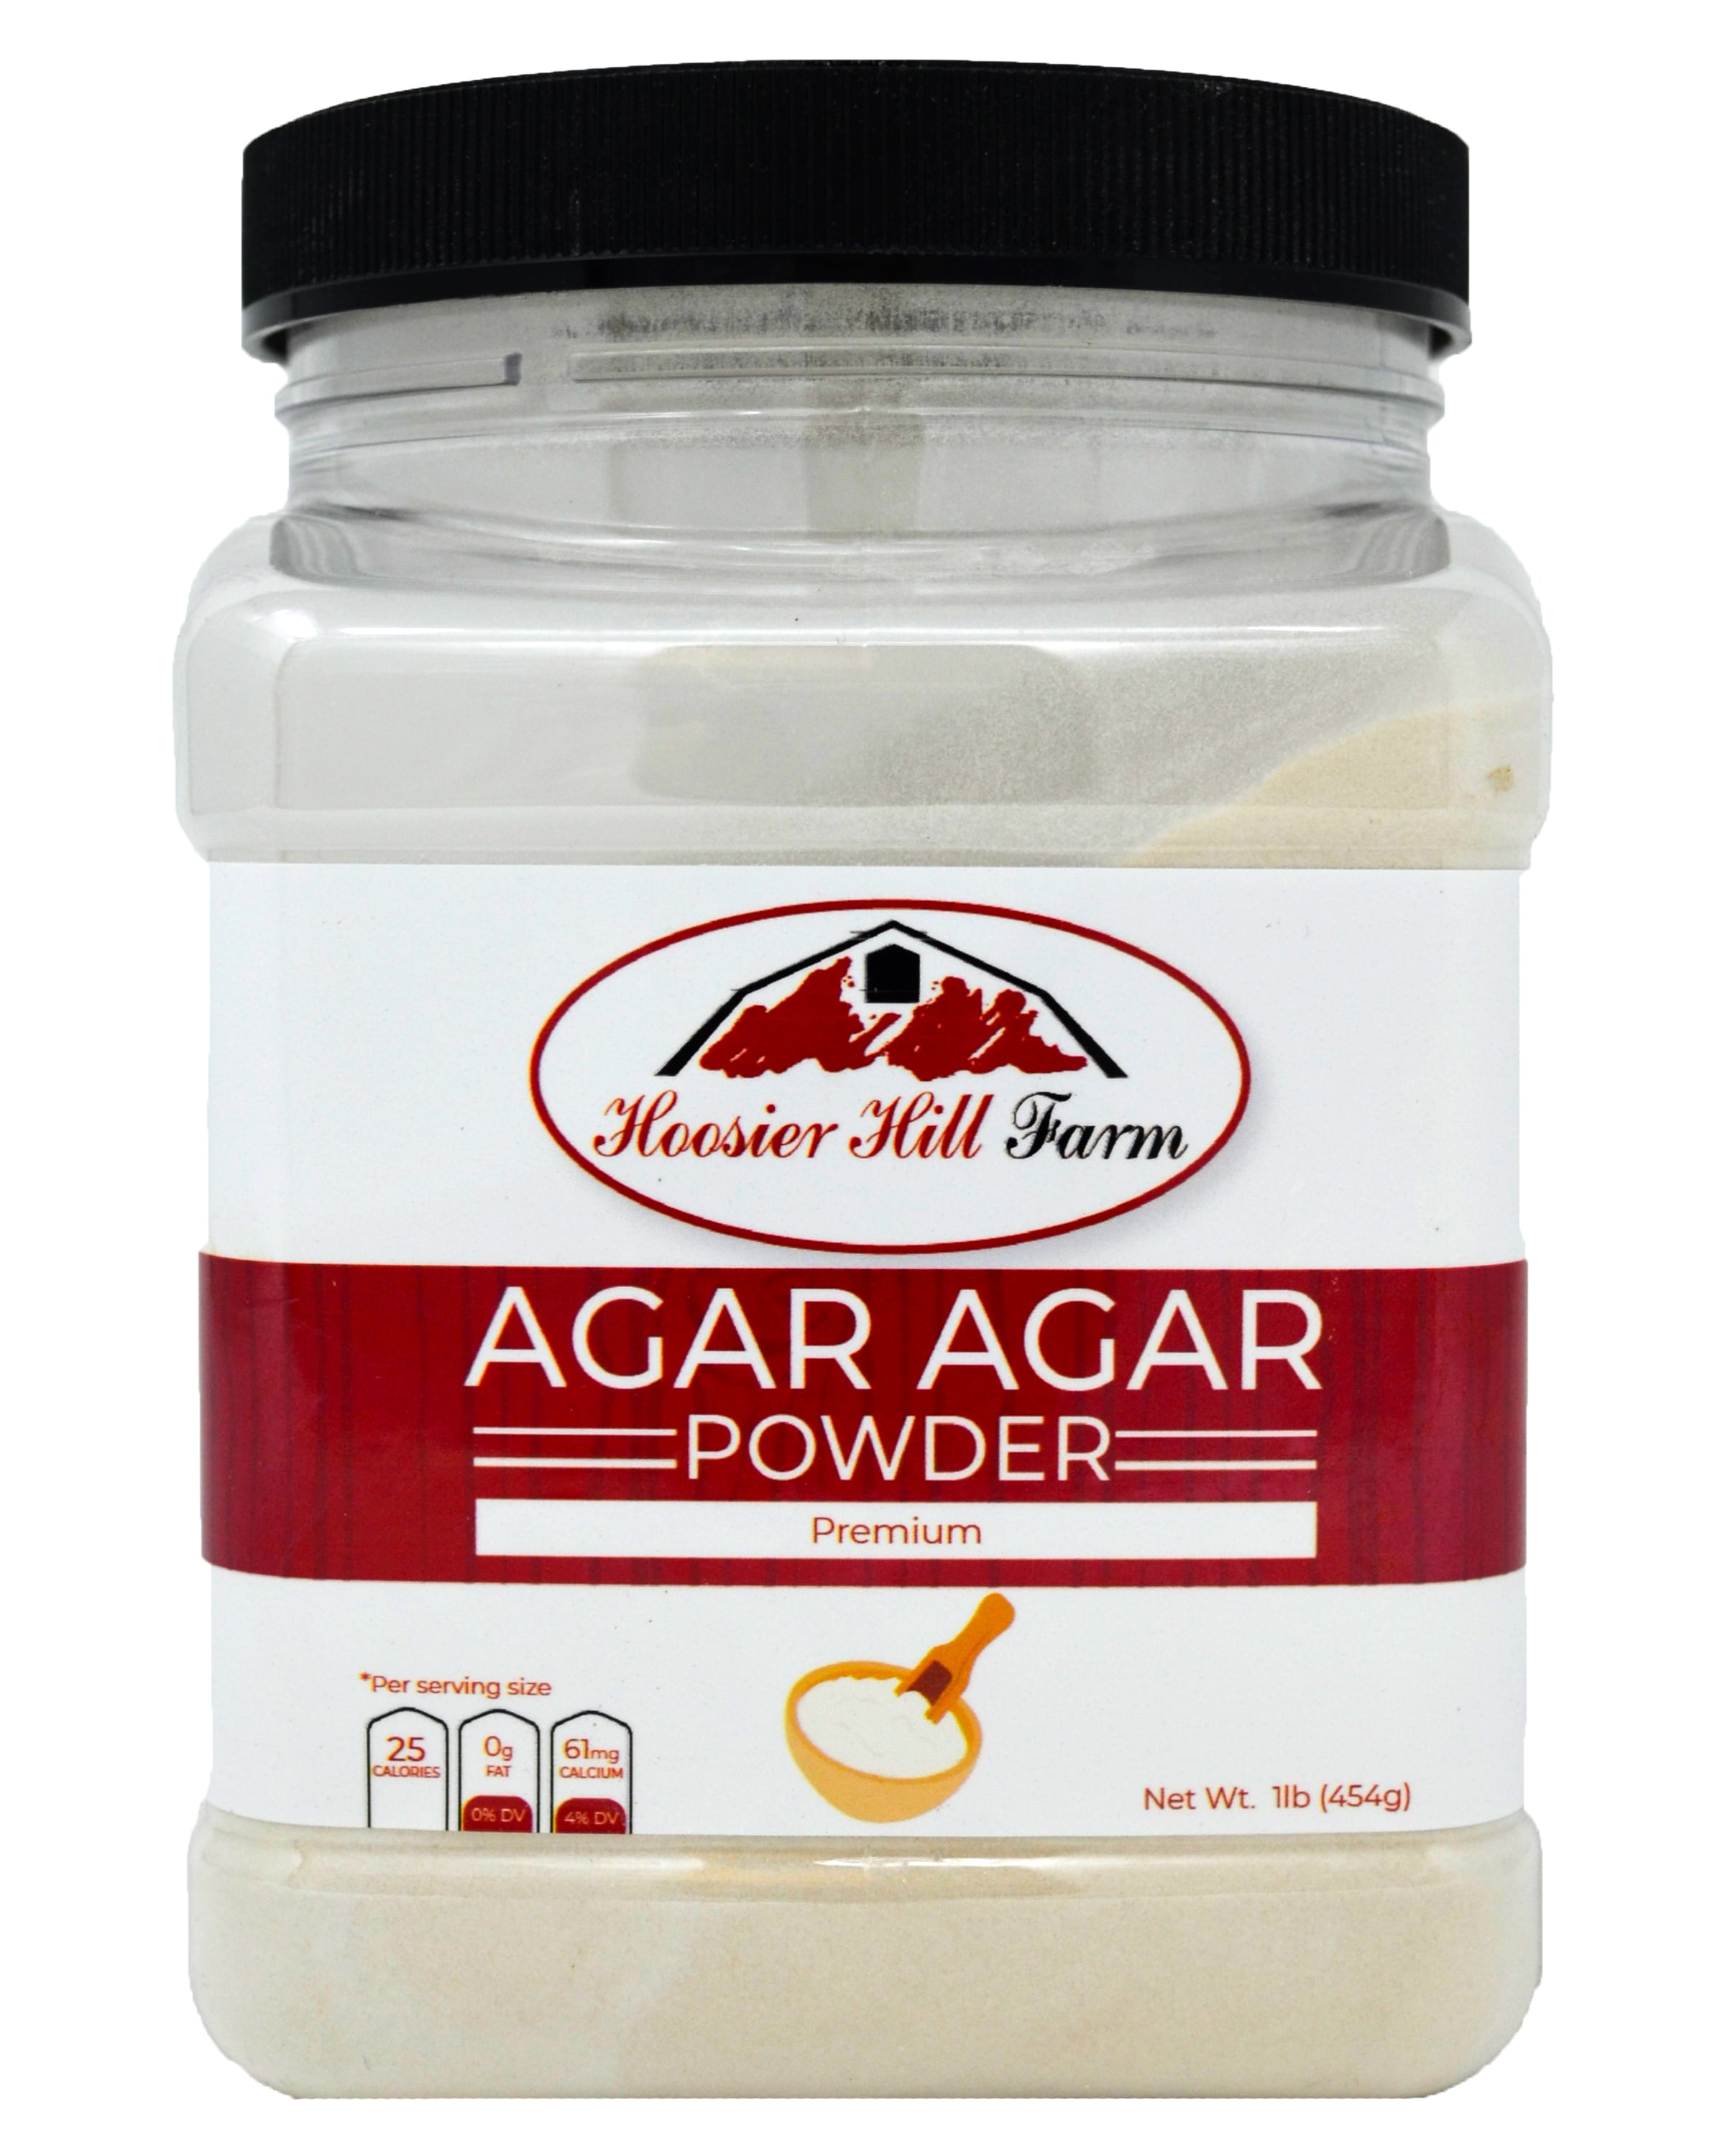 Hoosier Hill Farm Agar Agar powder, 1 lb.